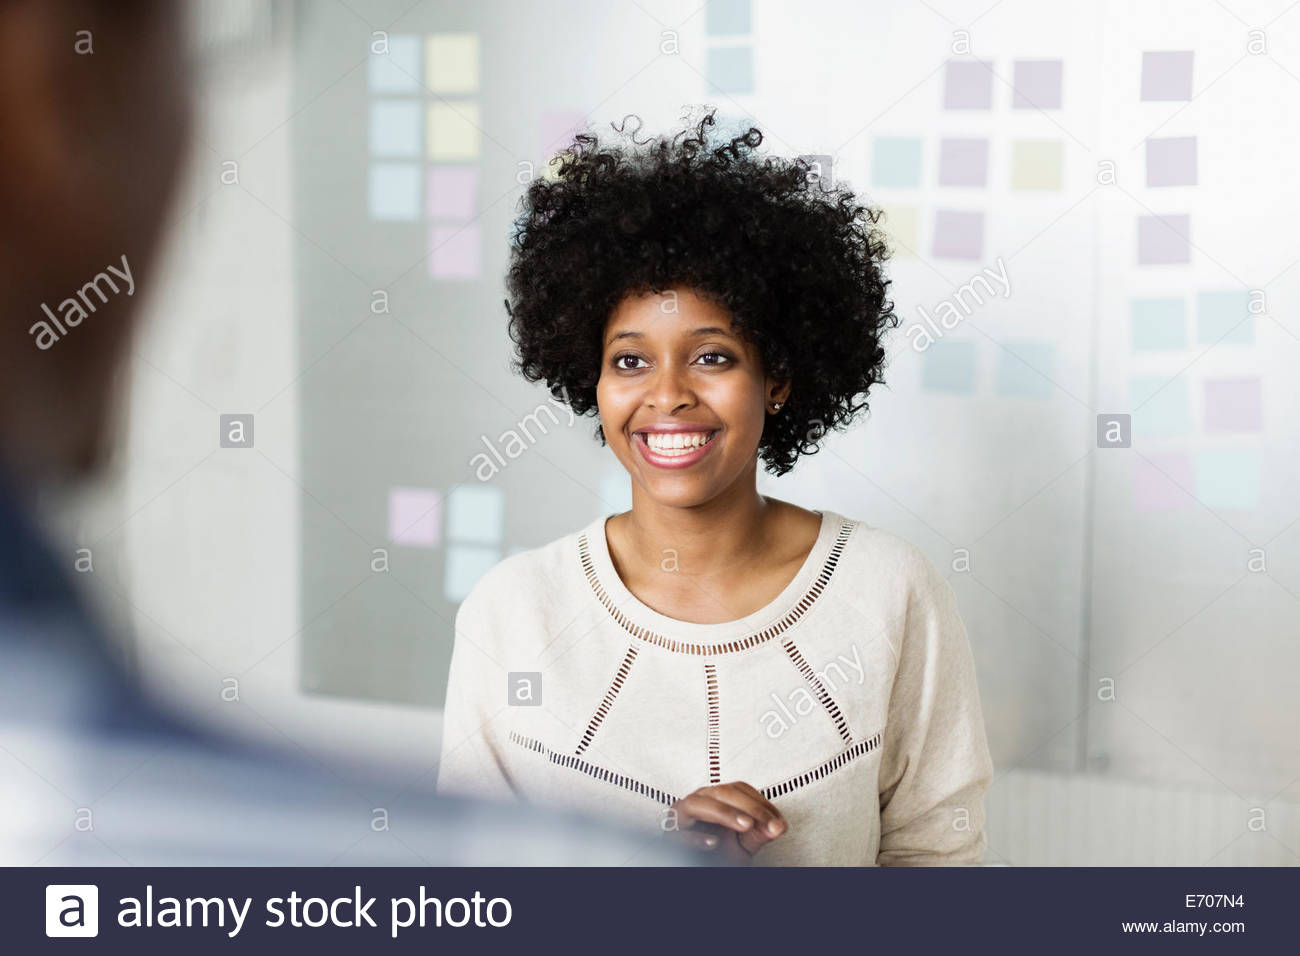 Portrait of young woman smiling Photo Stock